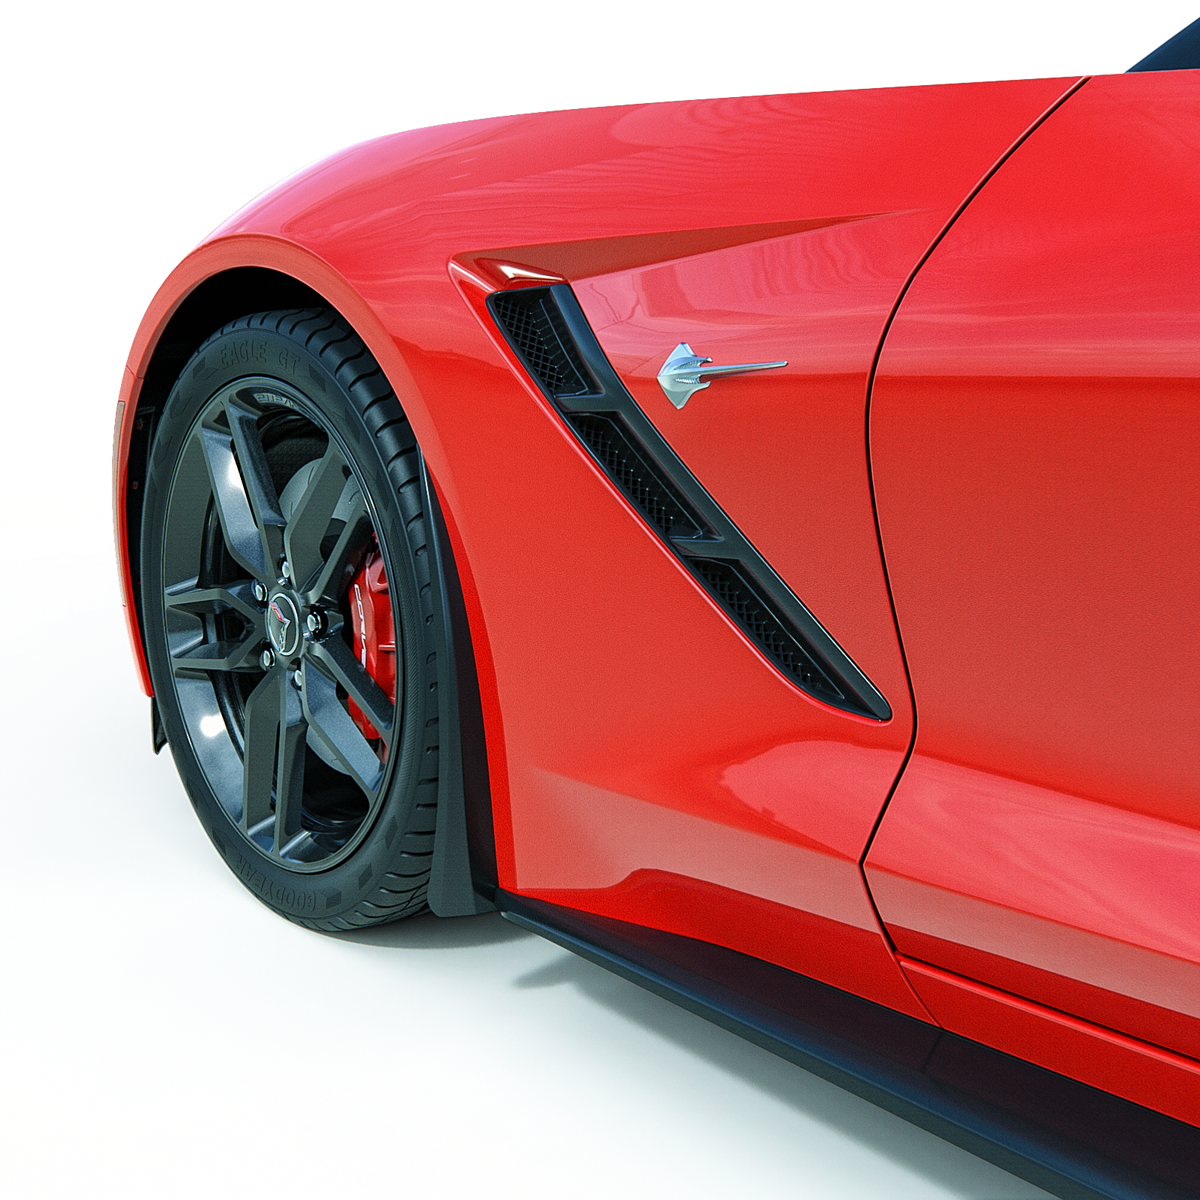 C7 Corvette ACS XL Front Wheel Rock / Splash Guards, Pair, Painted in Carbon Flash Metallatic